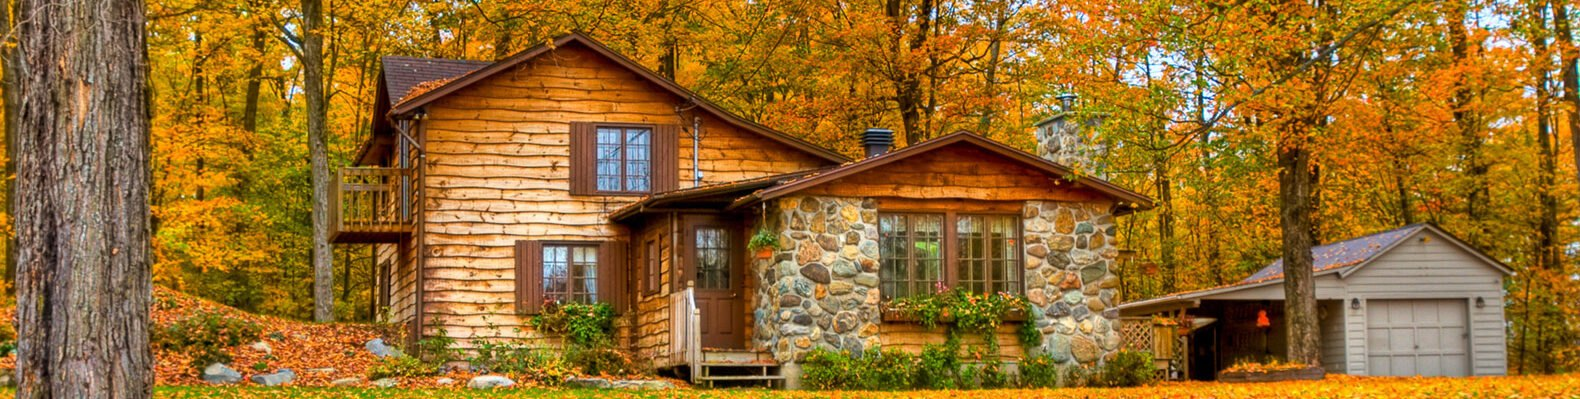 wood and stone home in a forest in the fall